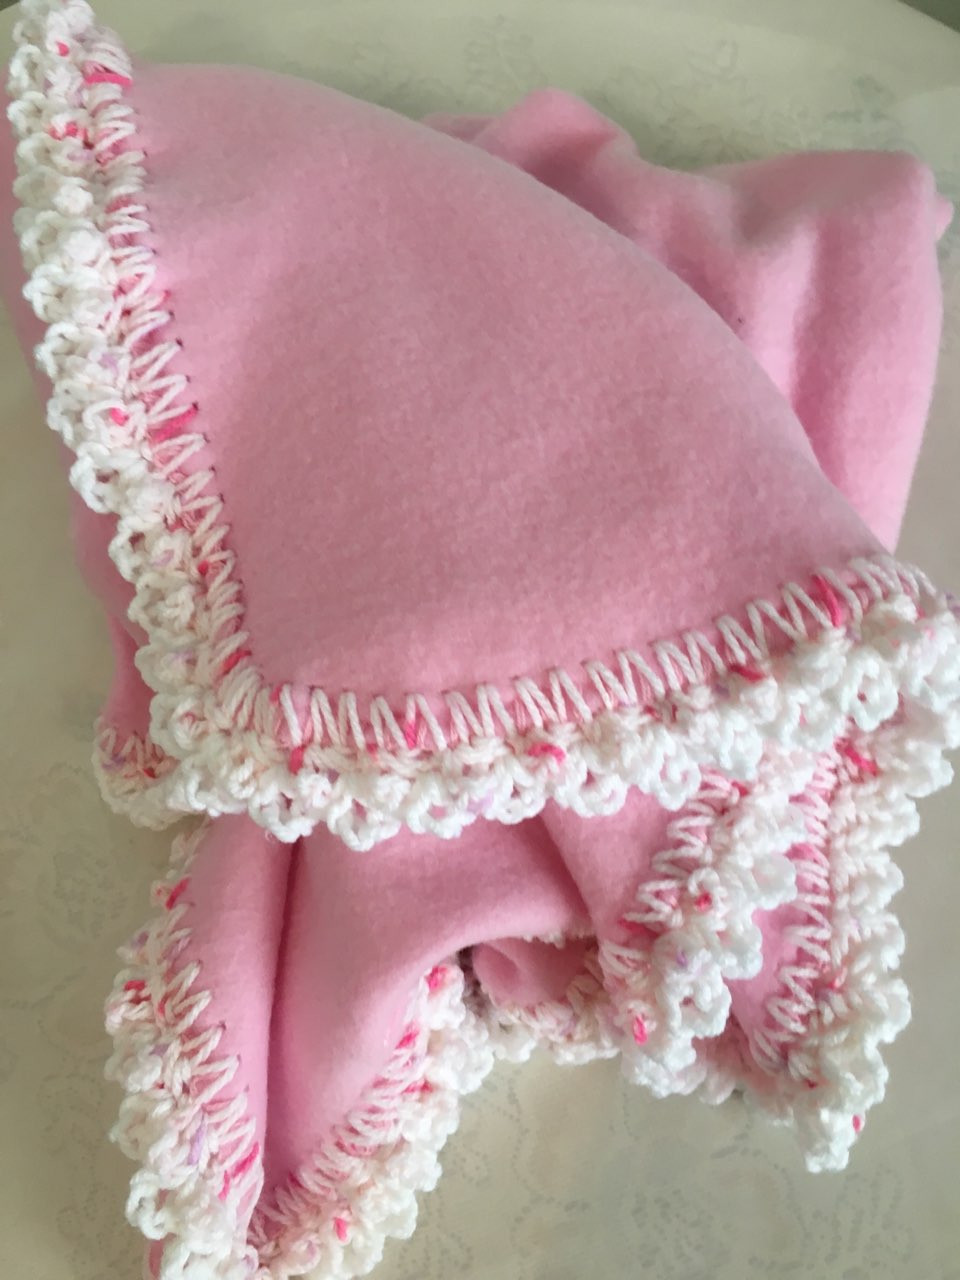 Pink Peppermint Polar Fleece Baby Blanket Country Look Hand Crocheted Border Peppermint Peppermint White Free Shipping Shop1707llc